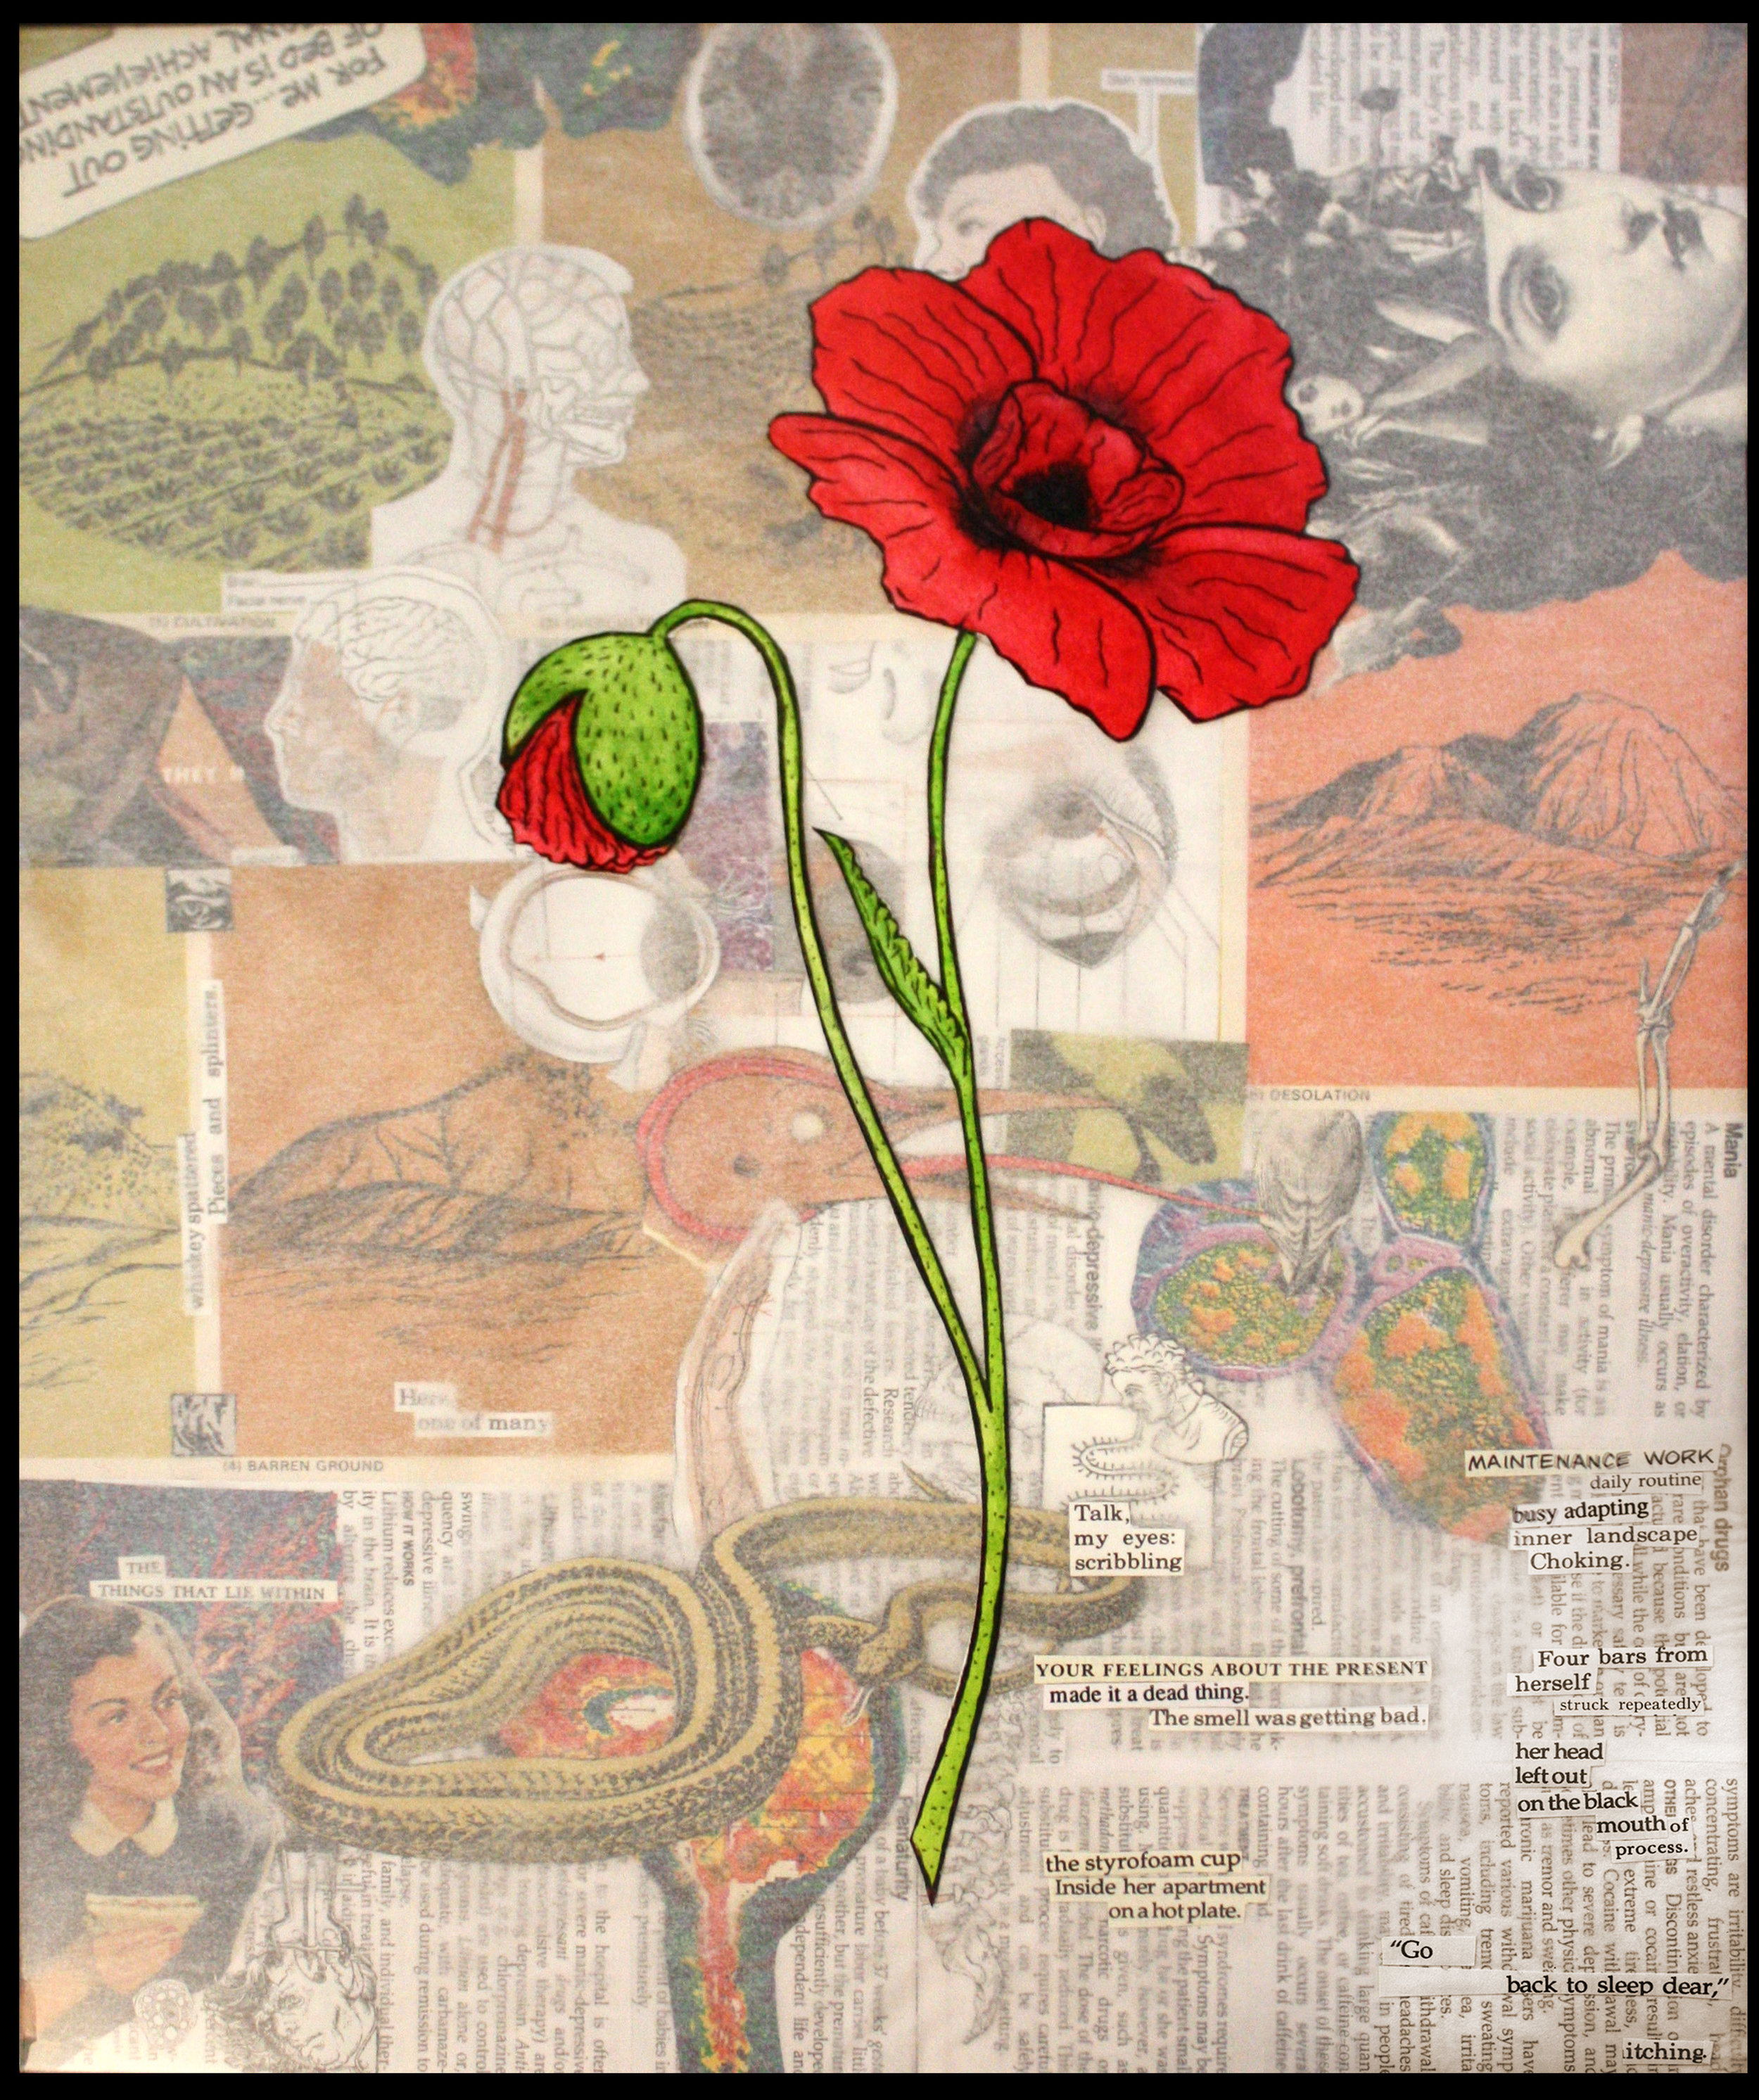 Kellie Hayden - Notes on Coping: Opium Poppy